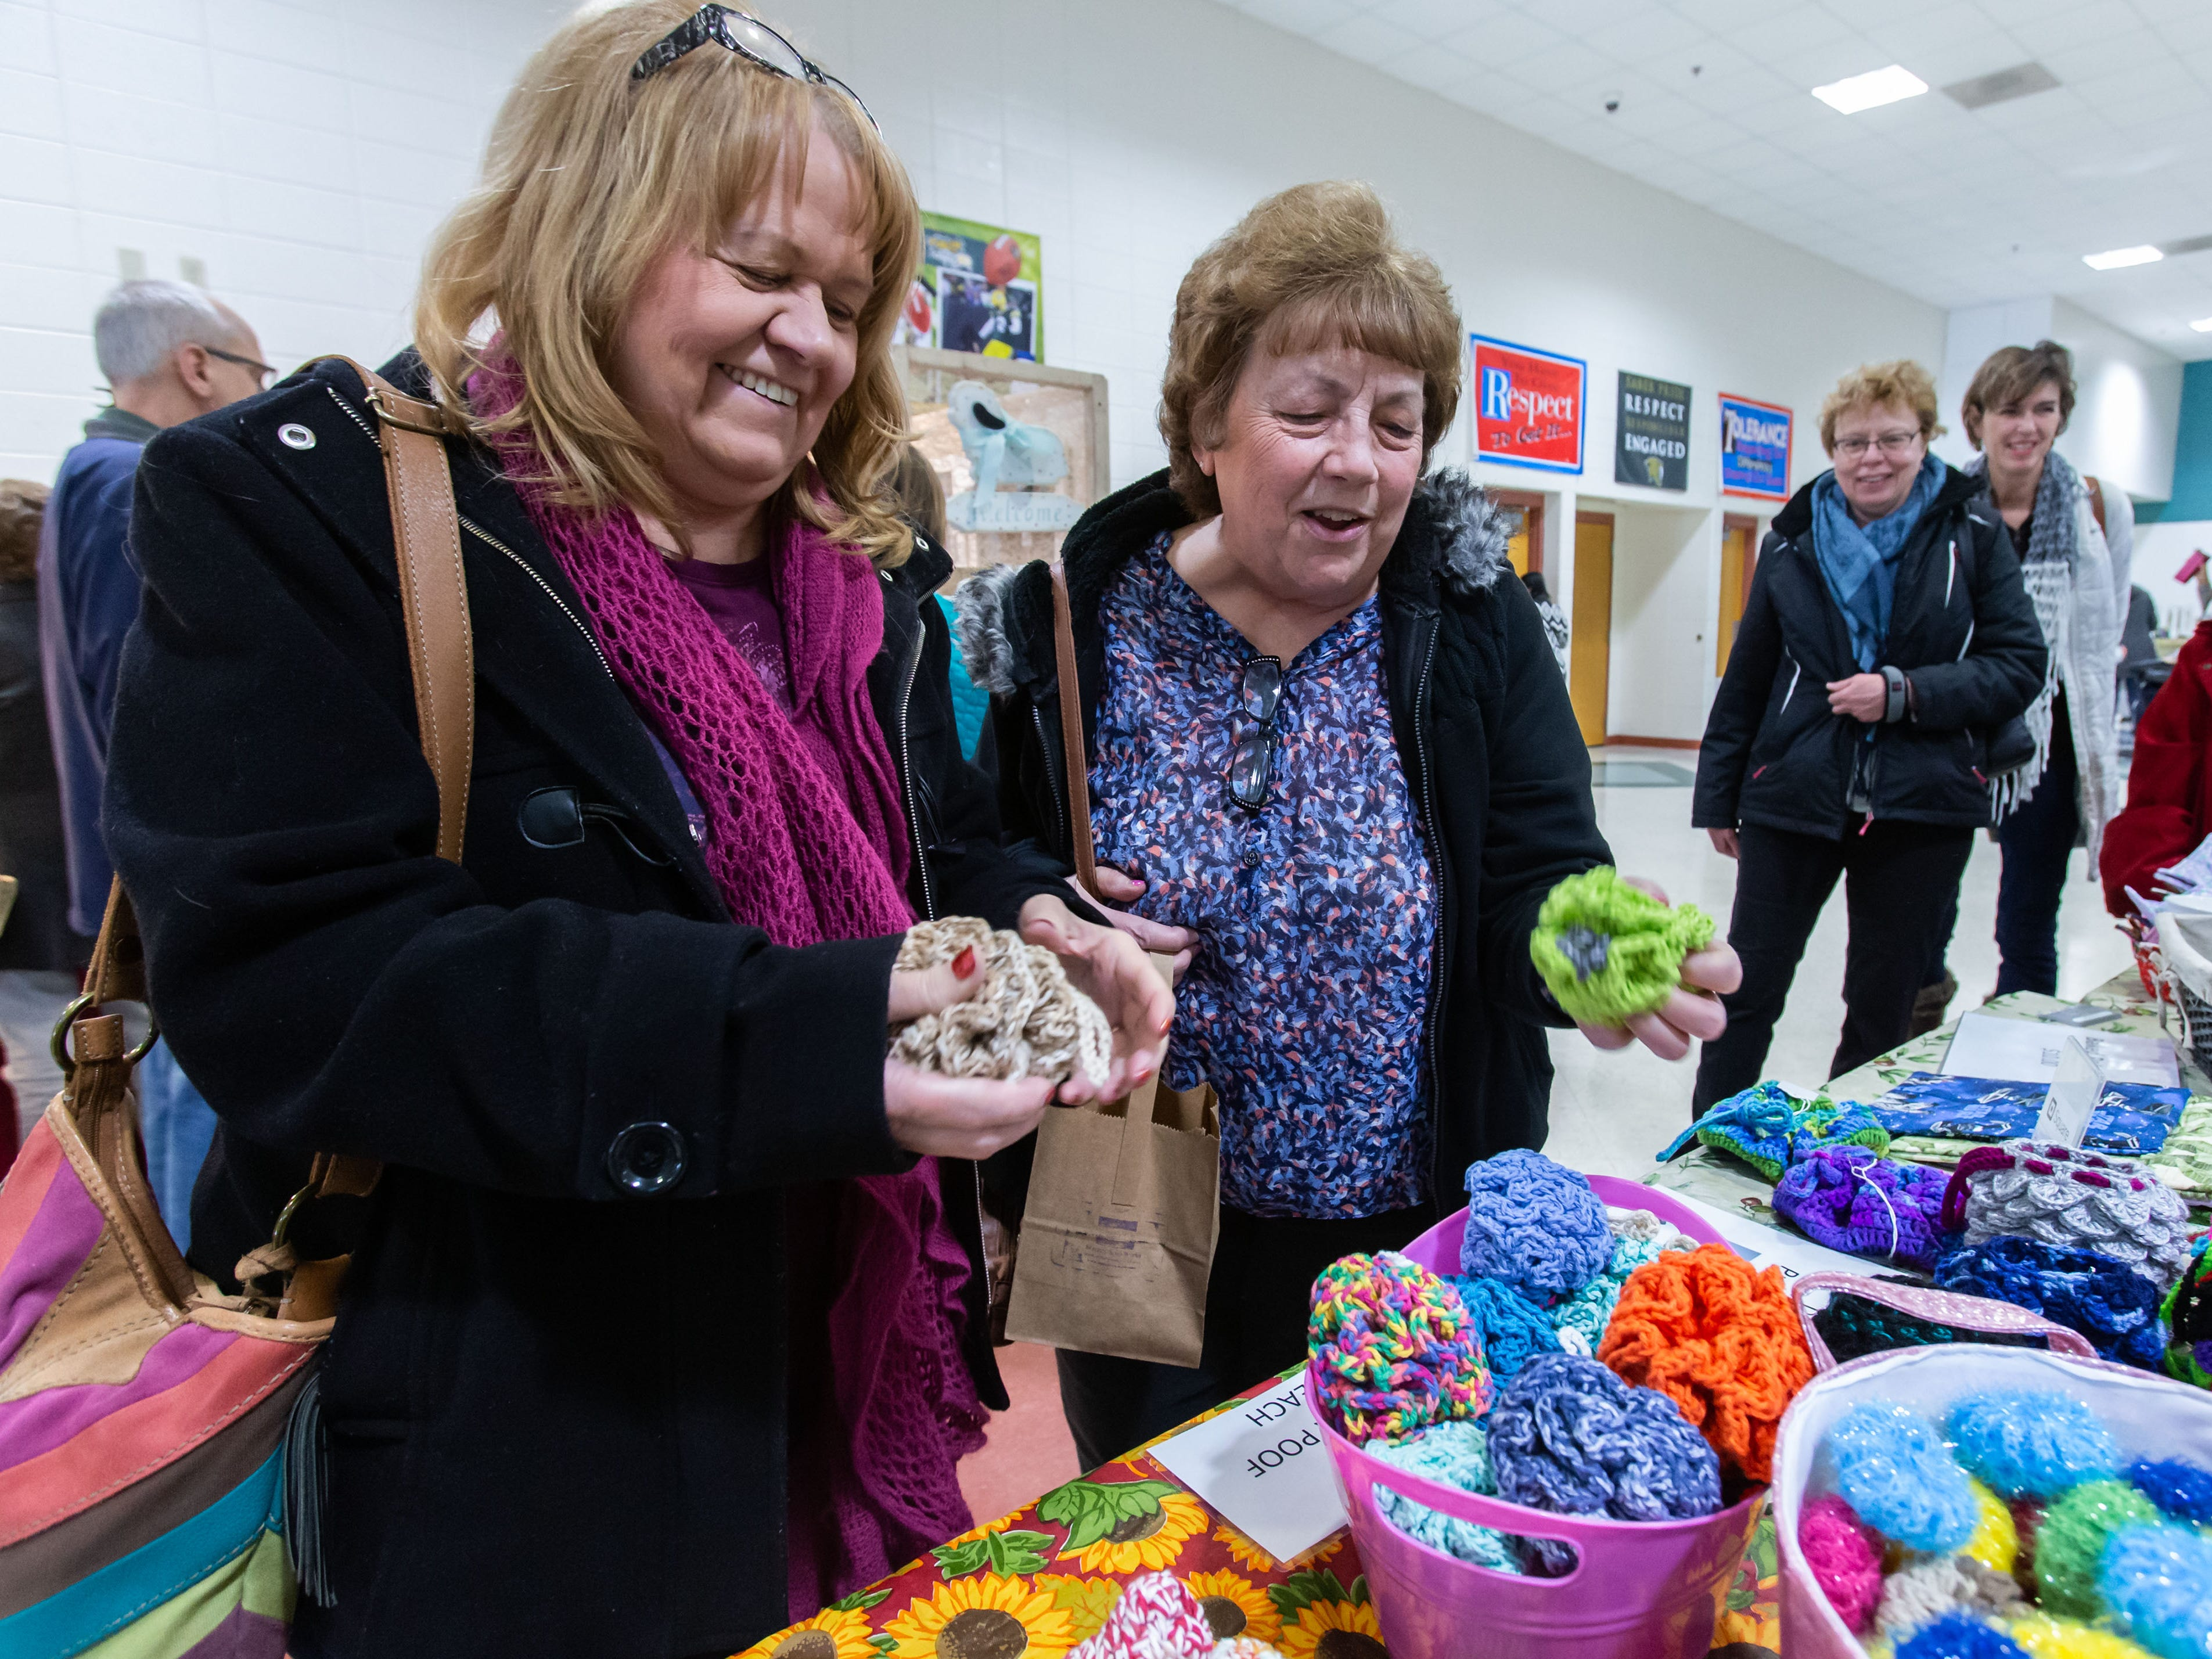 Cheryl Corey (left) of Waterford and Pat Awe of Milwaukee look over a variety of hand-crafted items during the 3rd annual March into Spring Craft Fair at Franklin High School on Saturday, March 2, 2019. The event is a fundraiser for the Franklin High School Marching Band.